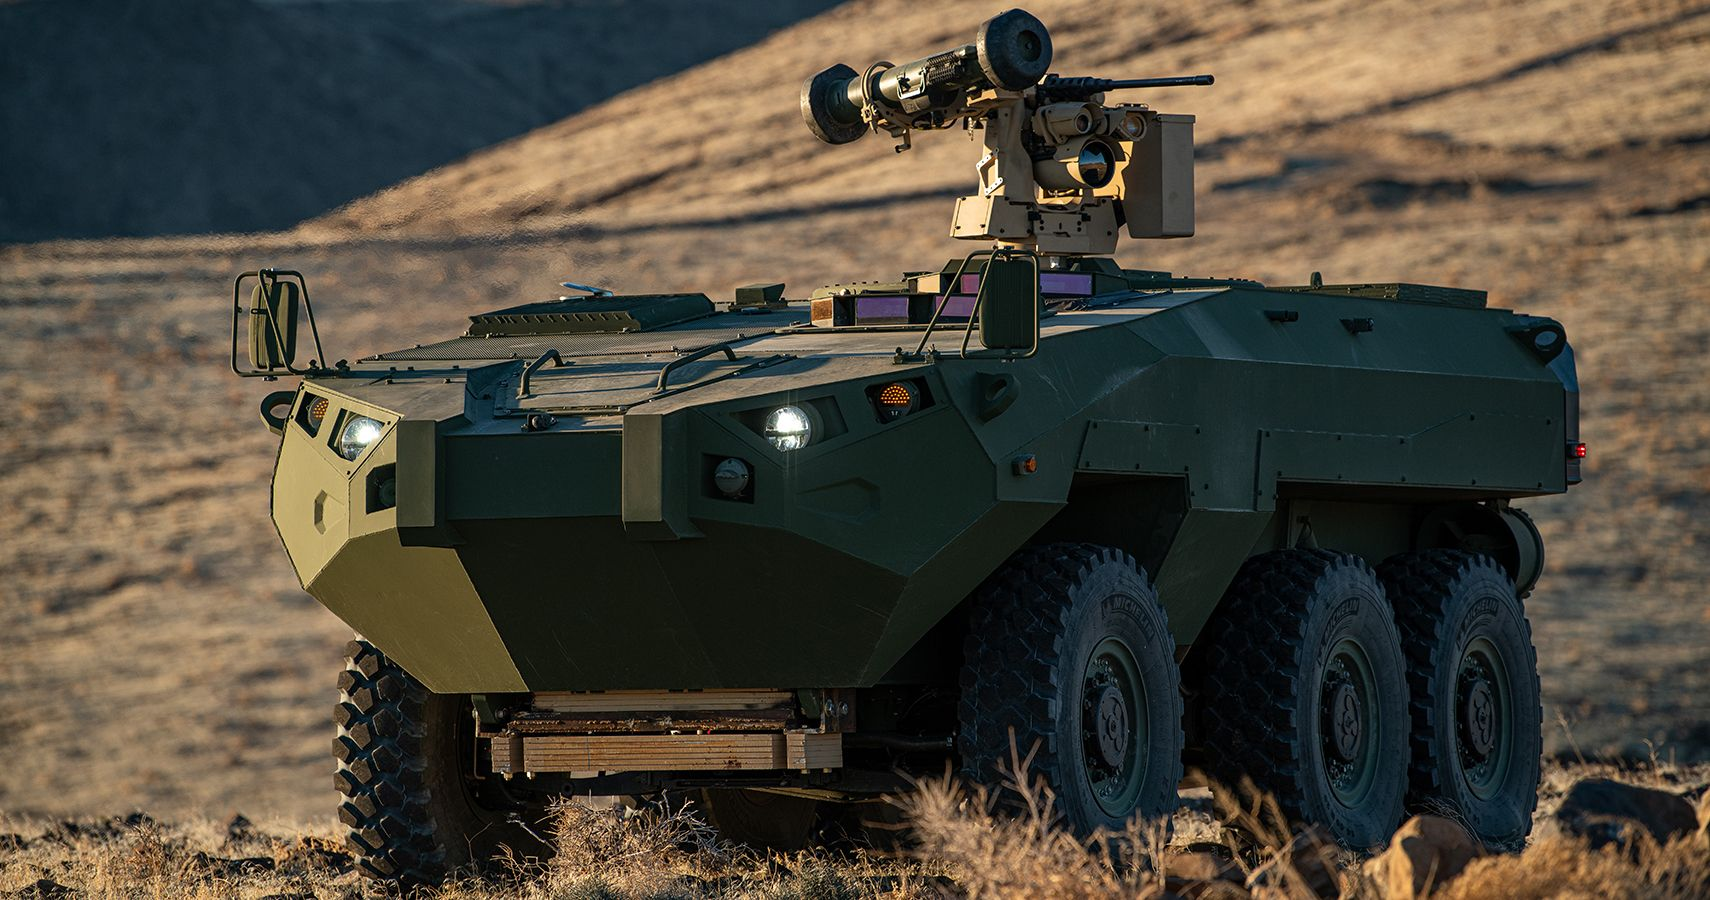 Cottonmouth Amphibious Vehicle Tech Lets Marines 'See-Through' Armor